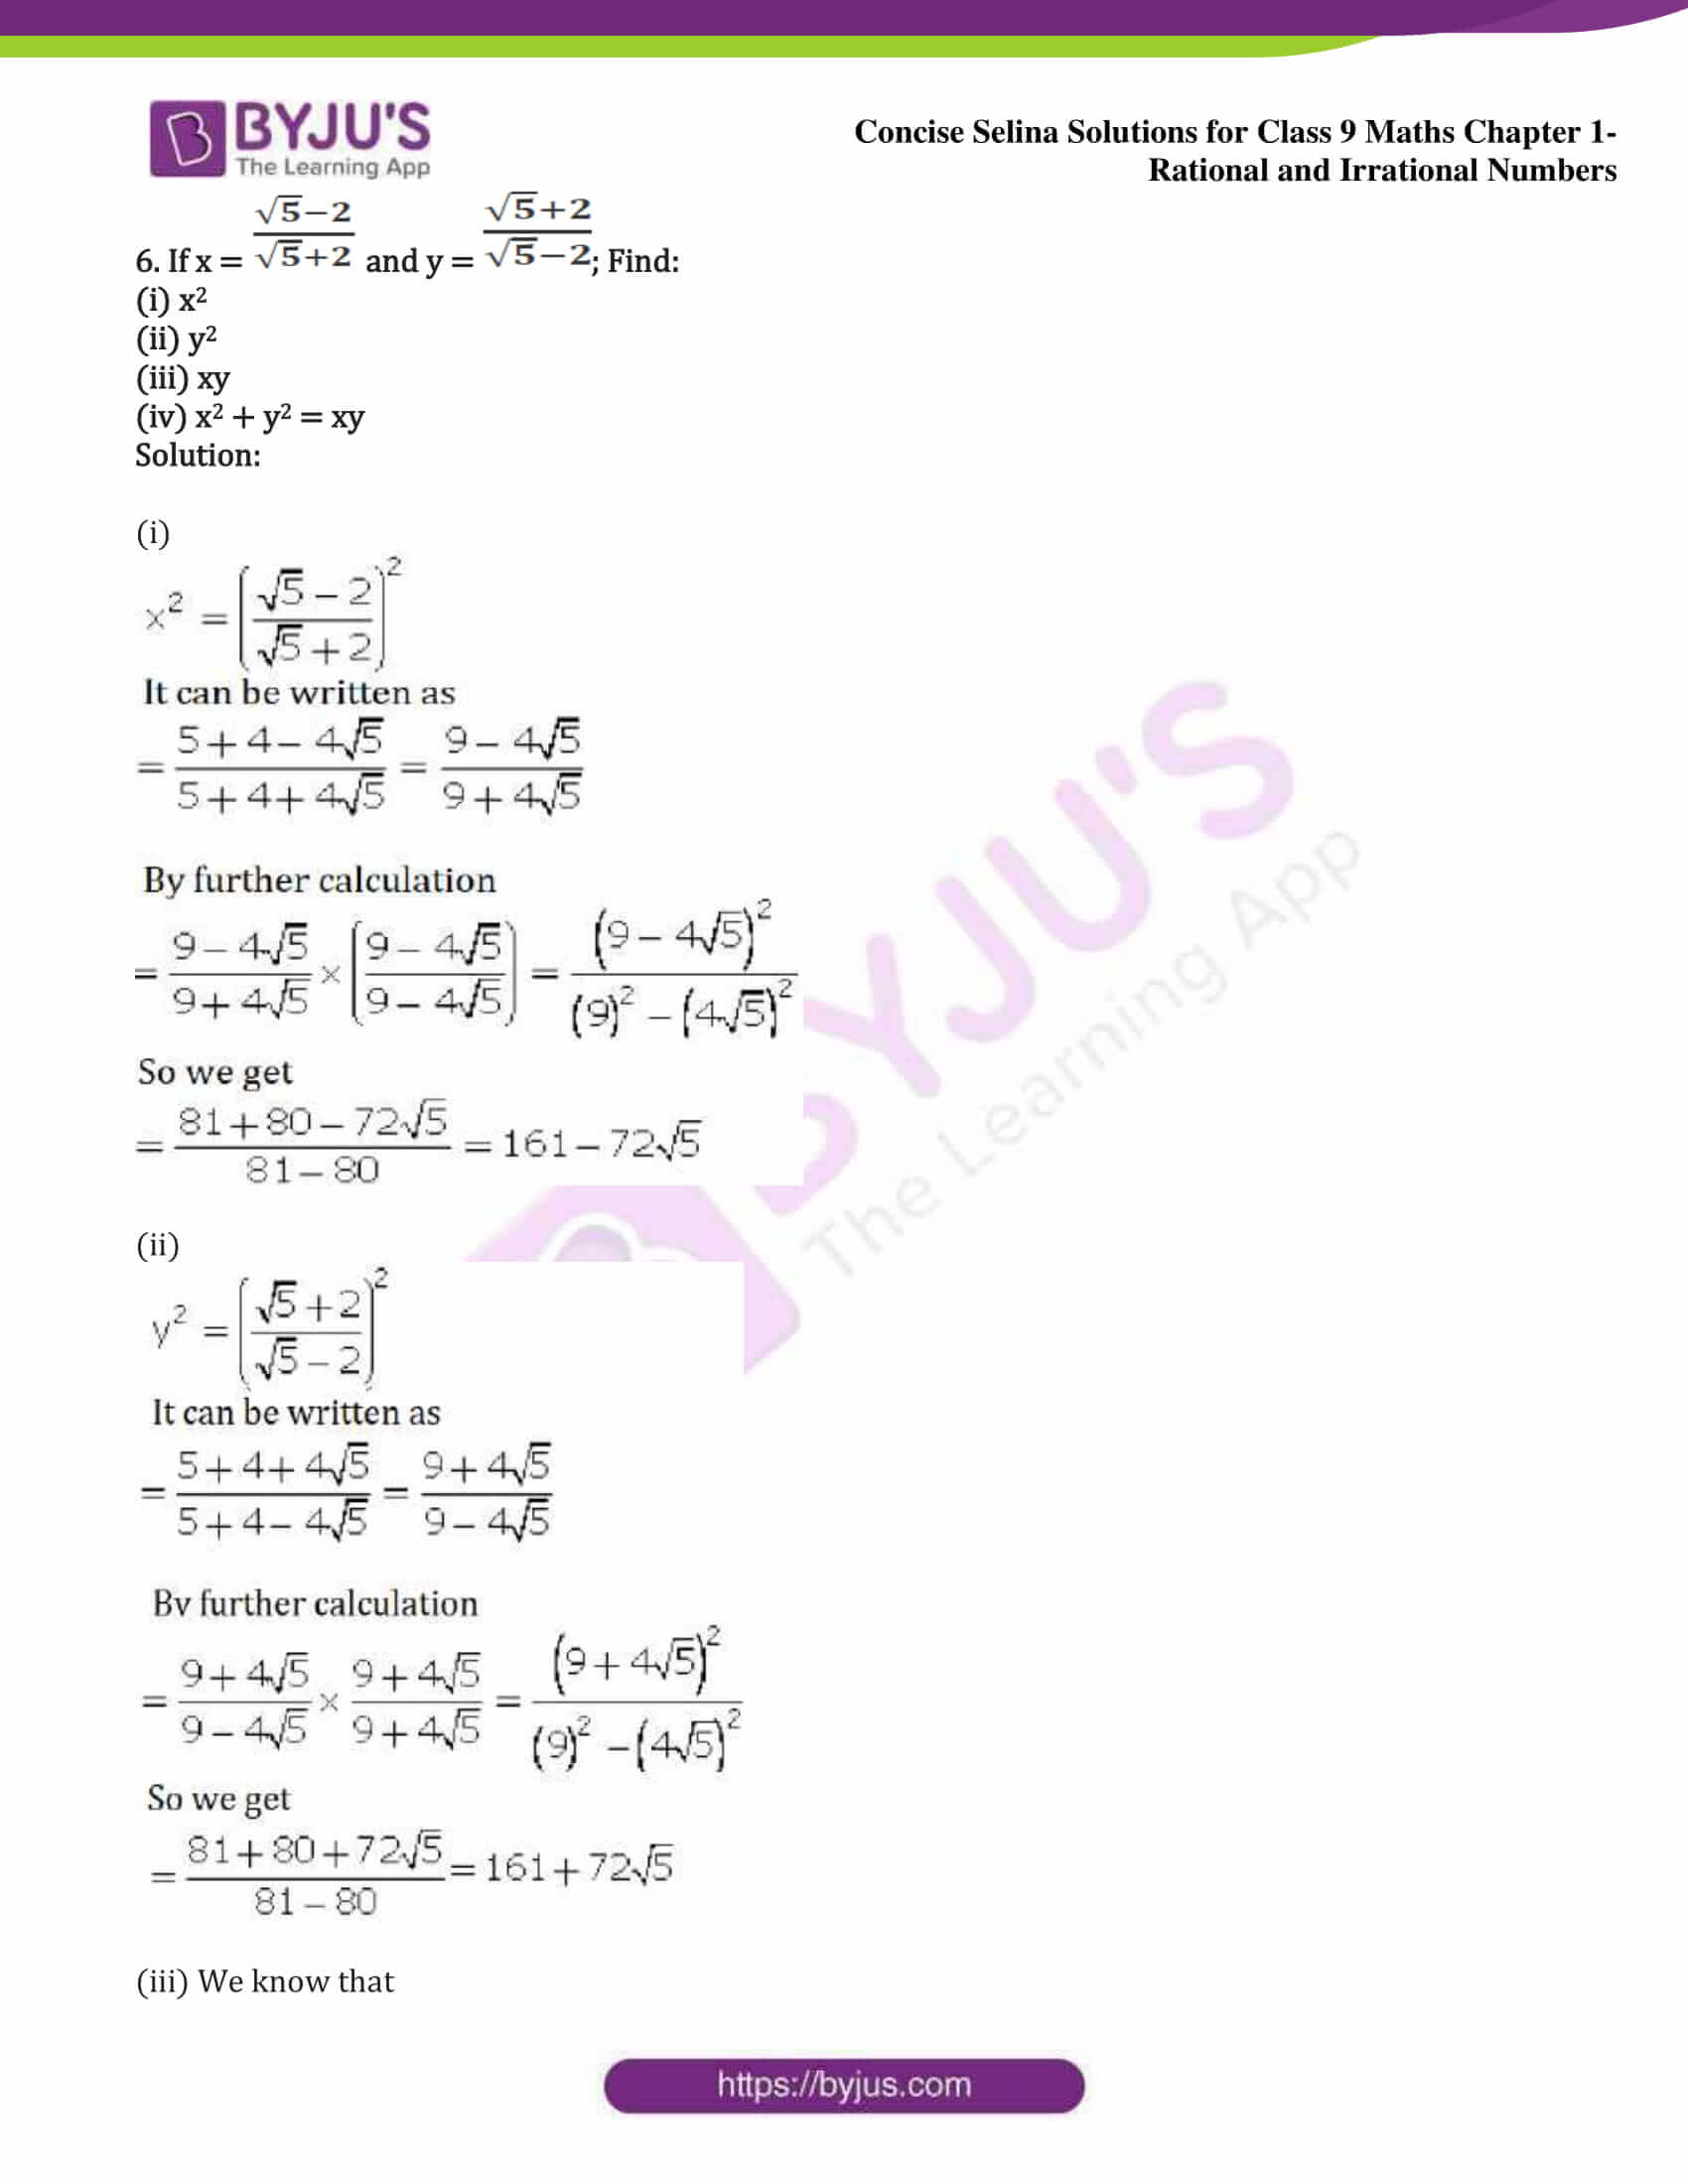 icse class 9 maths may13 selina solutions chapter 1 rational and irrational numbers 23